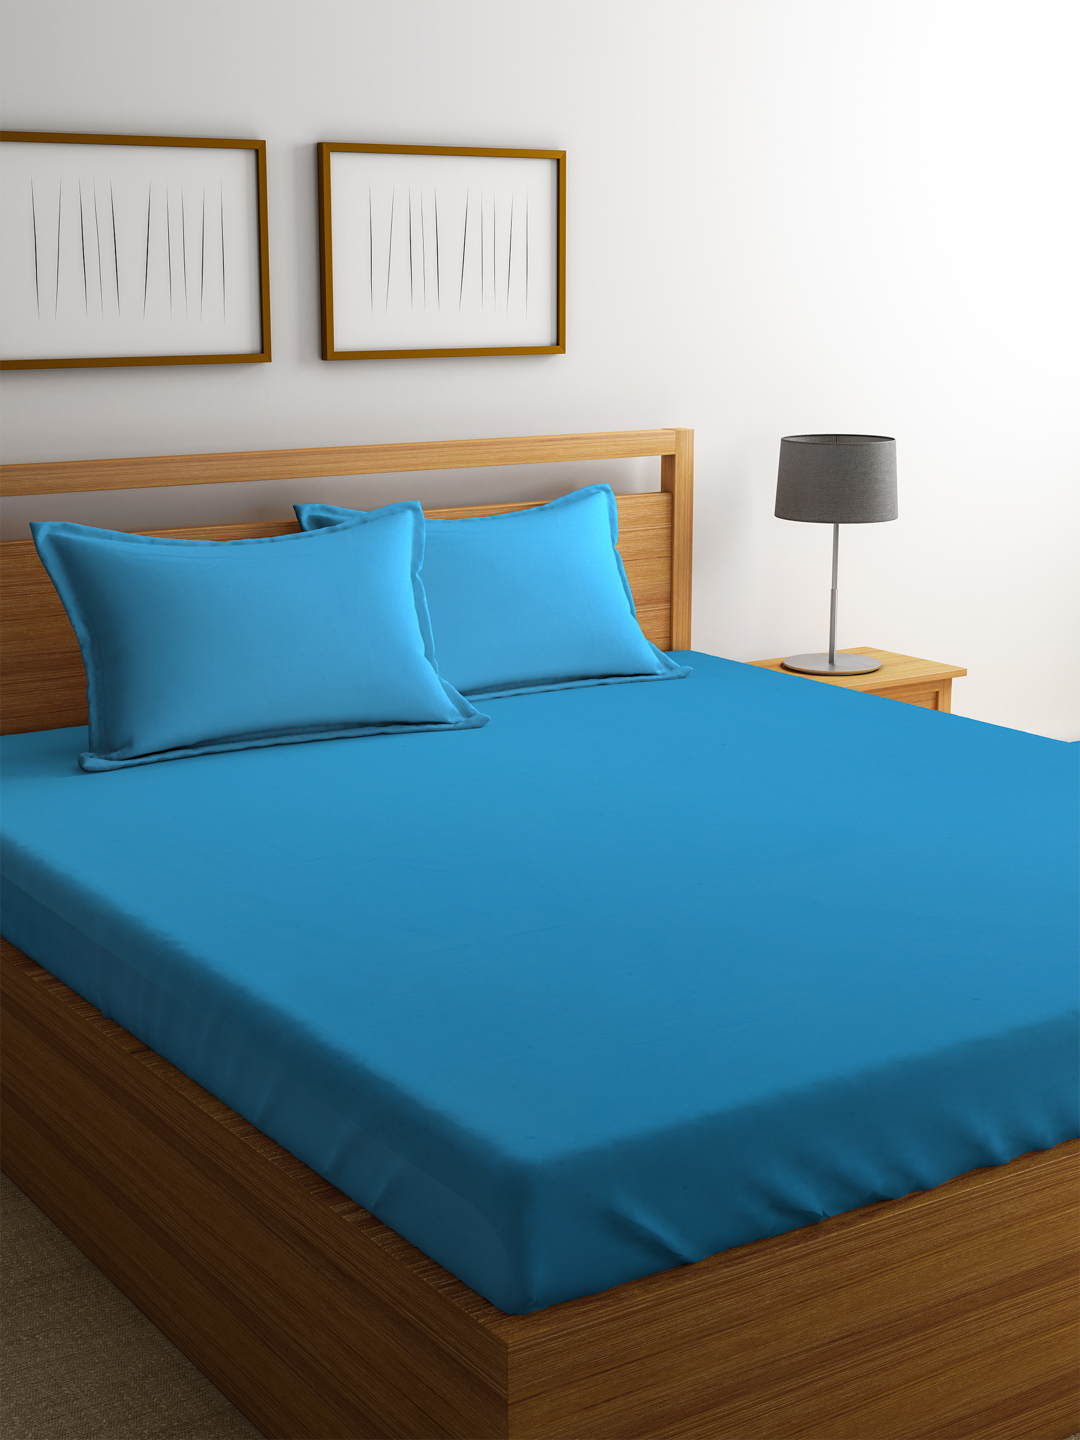 Portico Percale Cotton Double Bed Sheets in Blue Colour by Portico